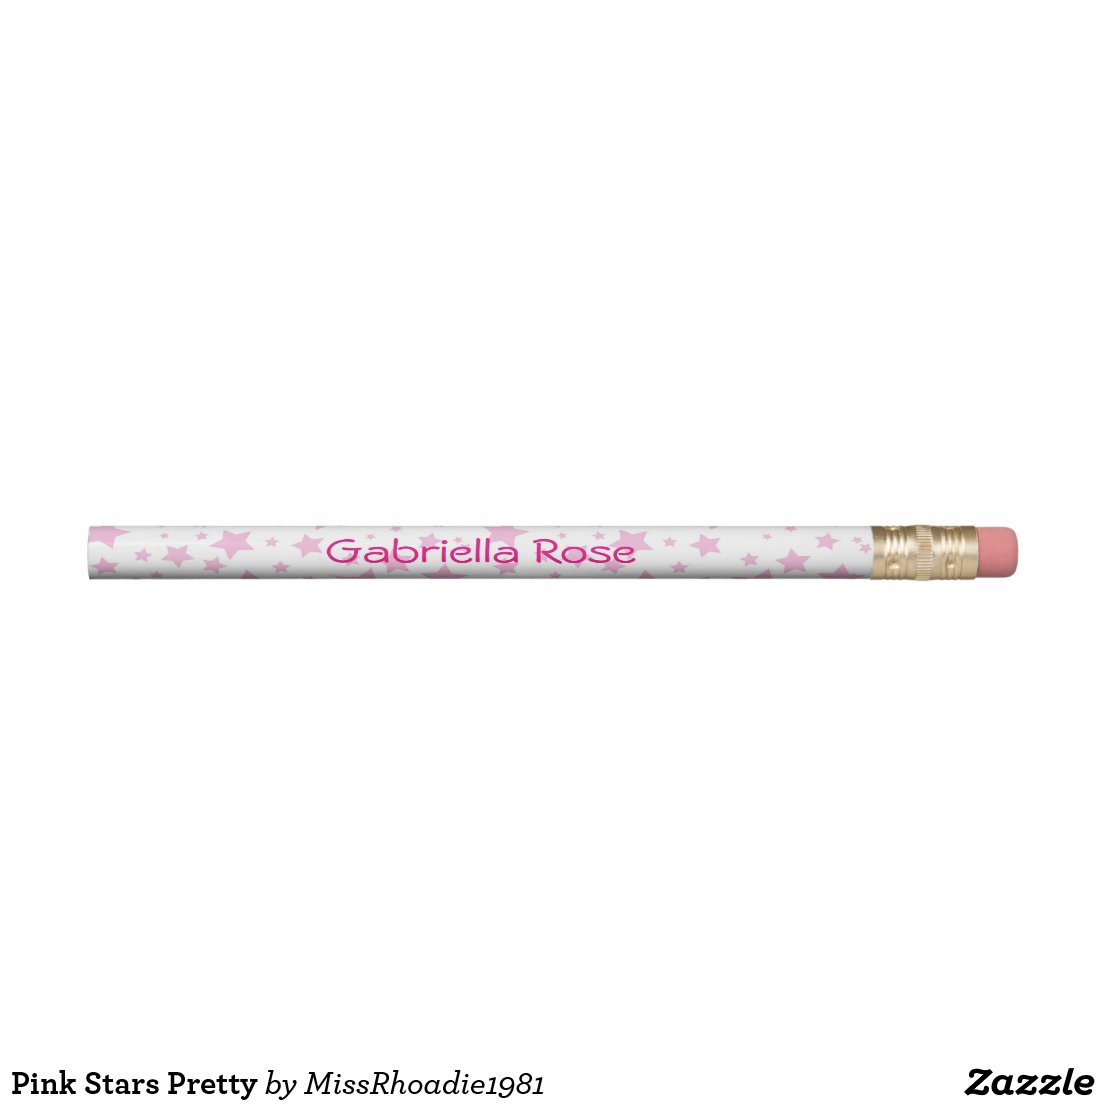 Pink Stars Personalized